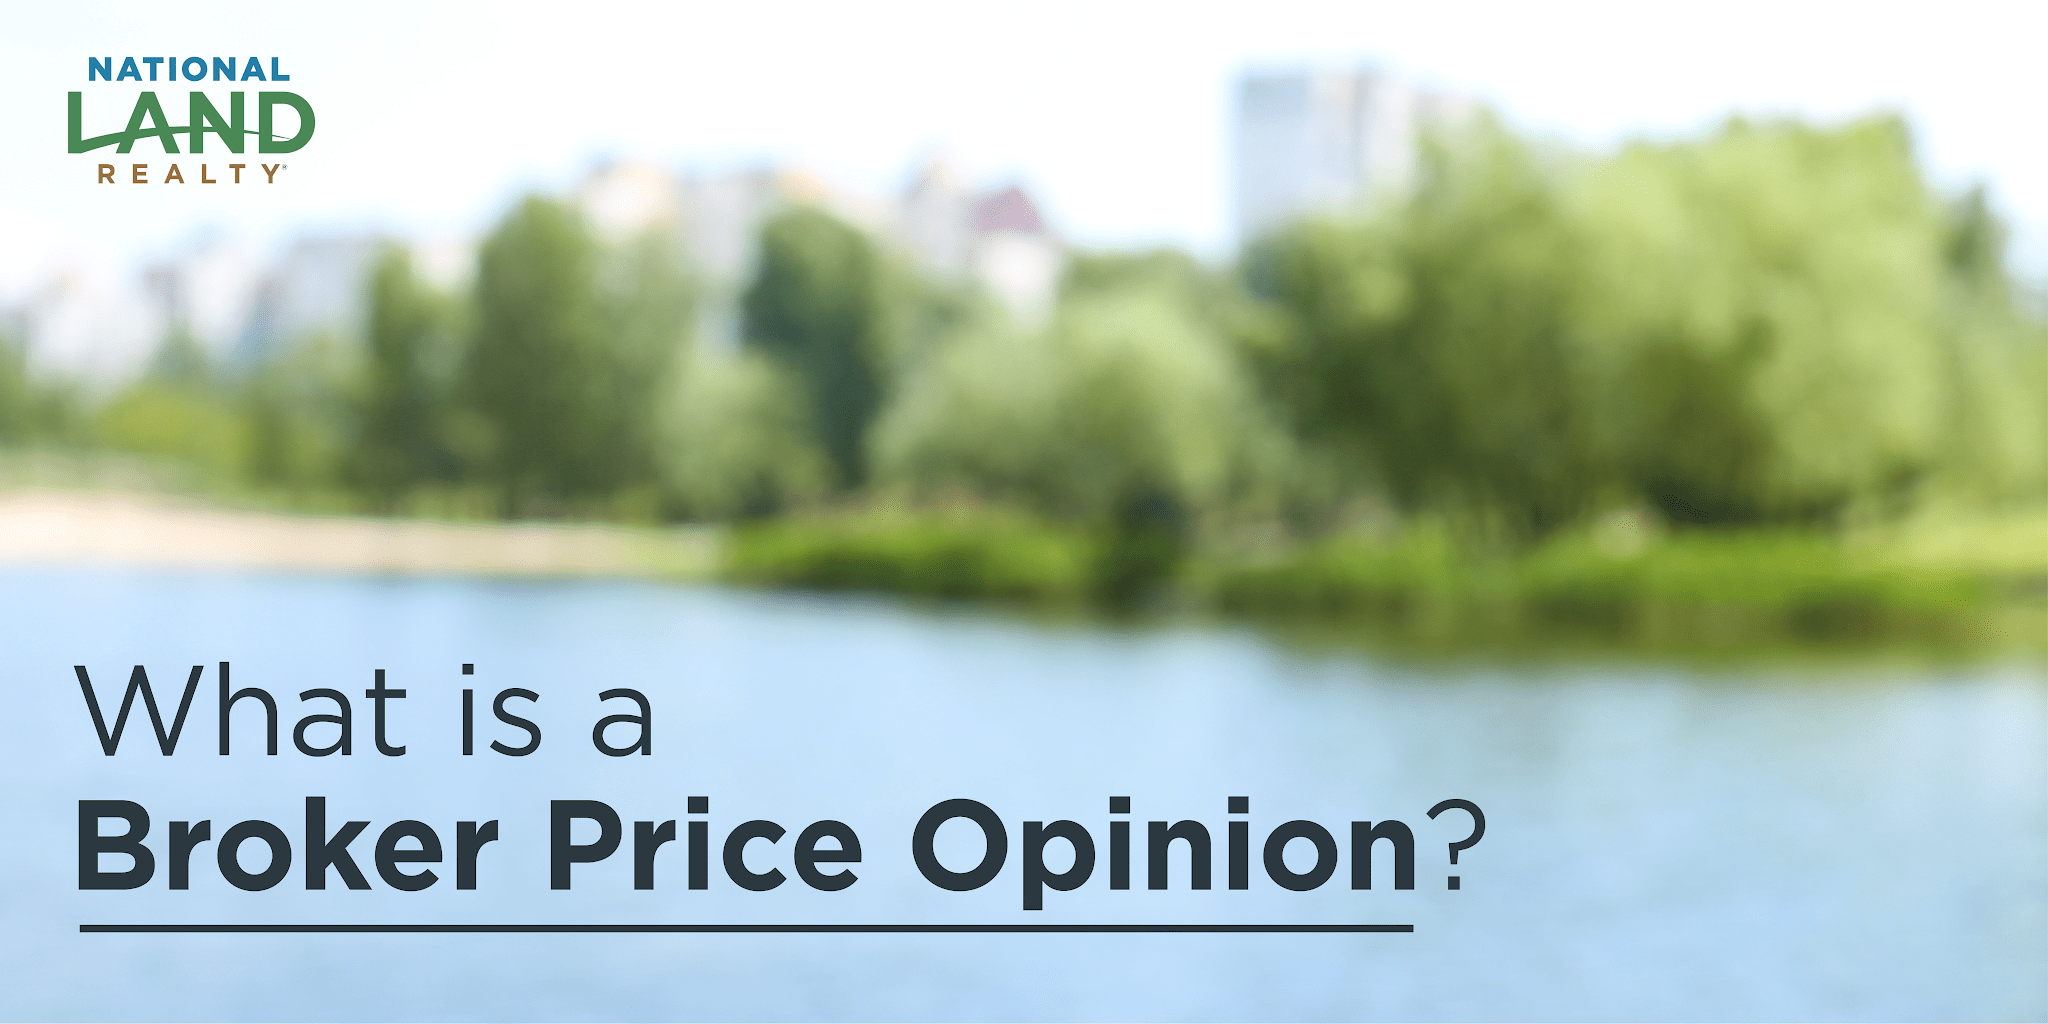 What is a Broker Price Opinion?